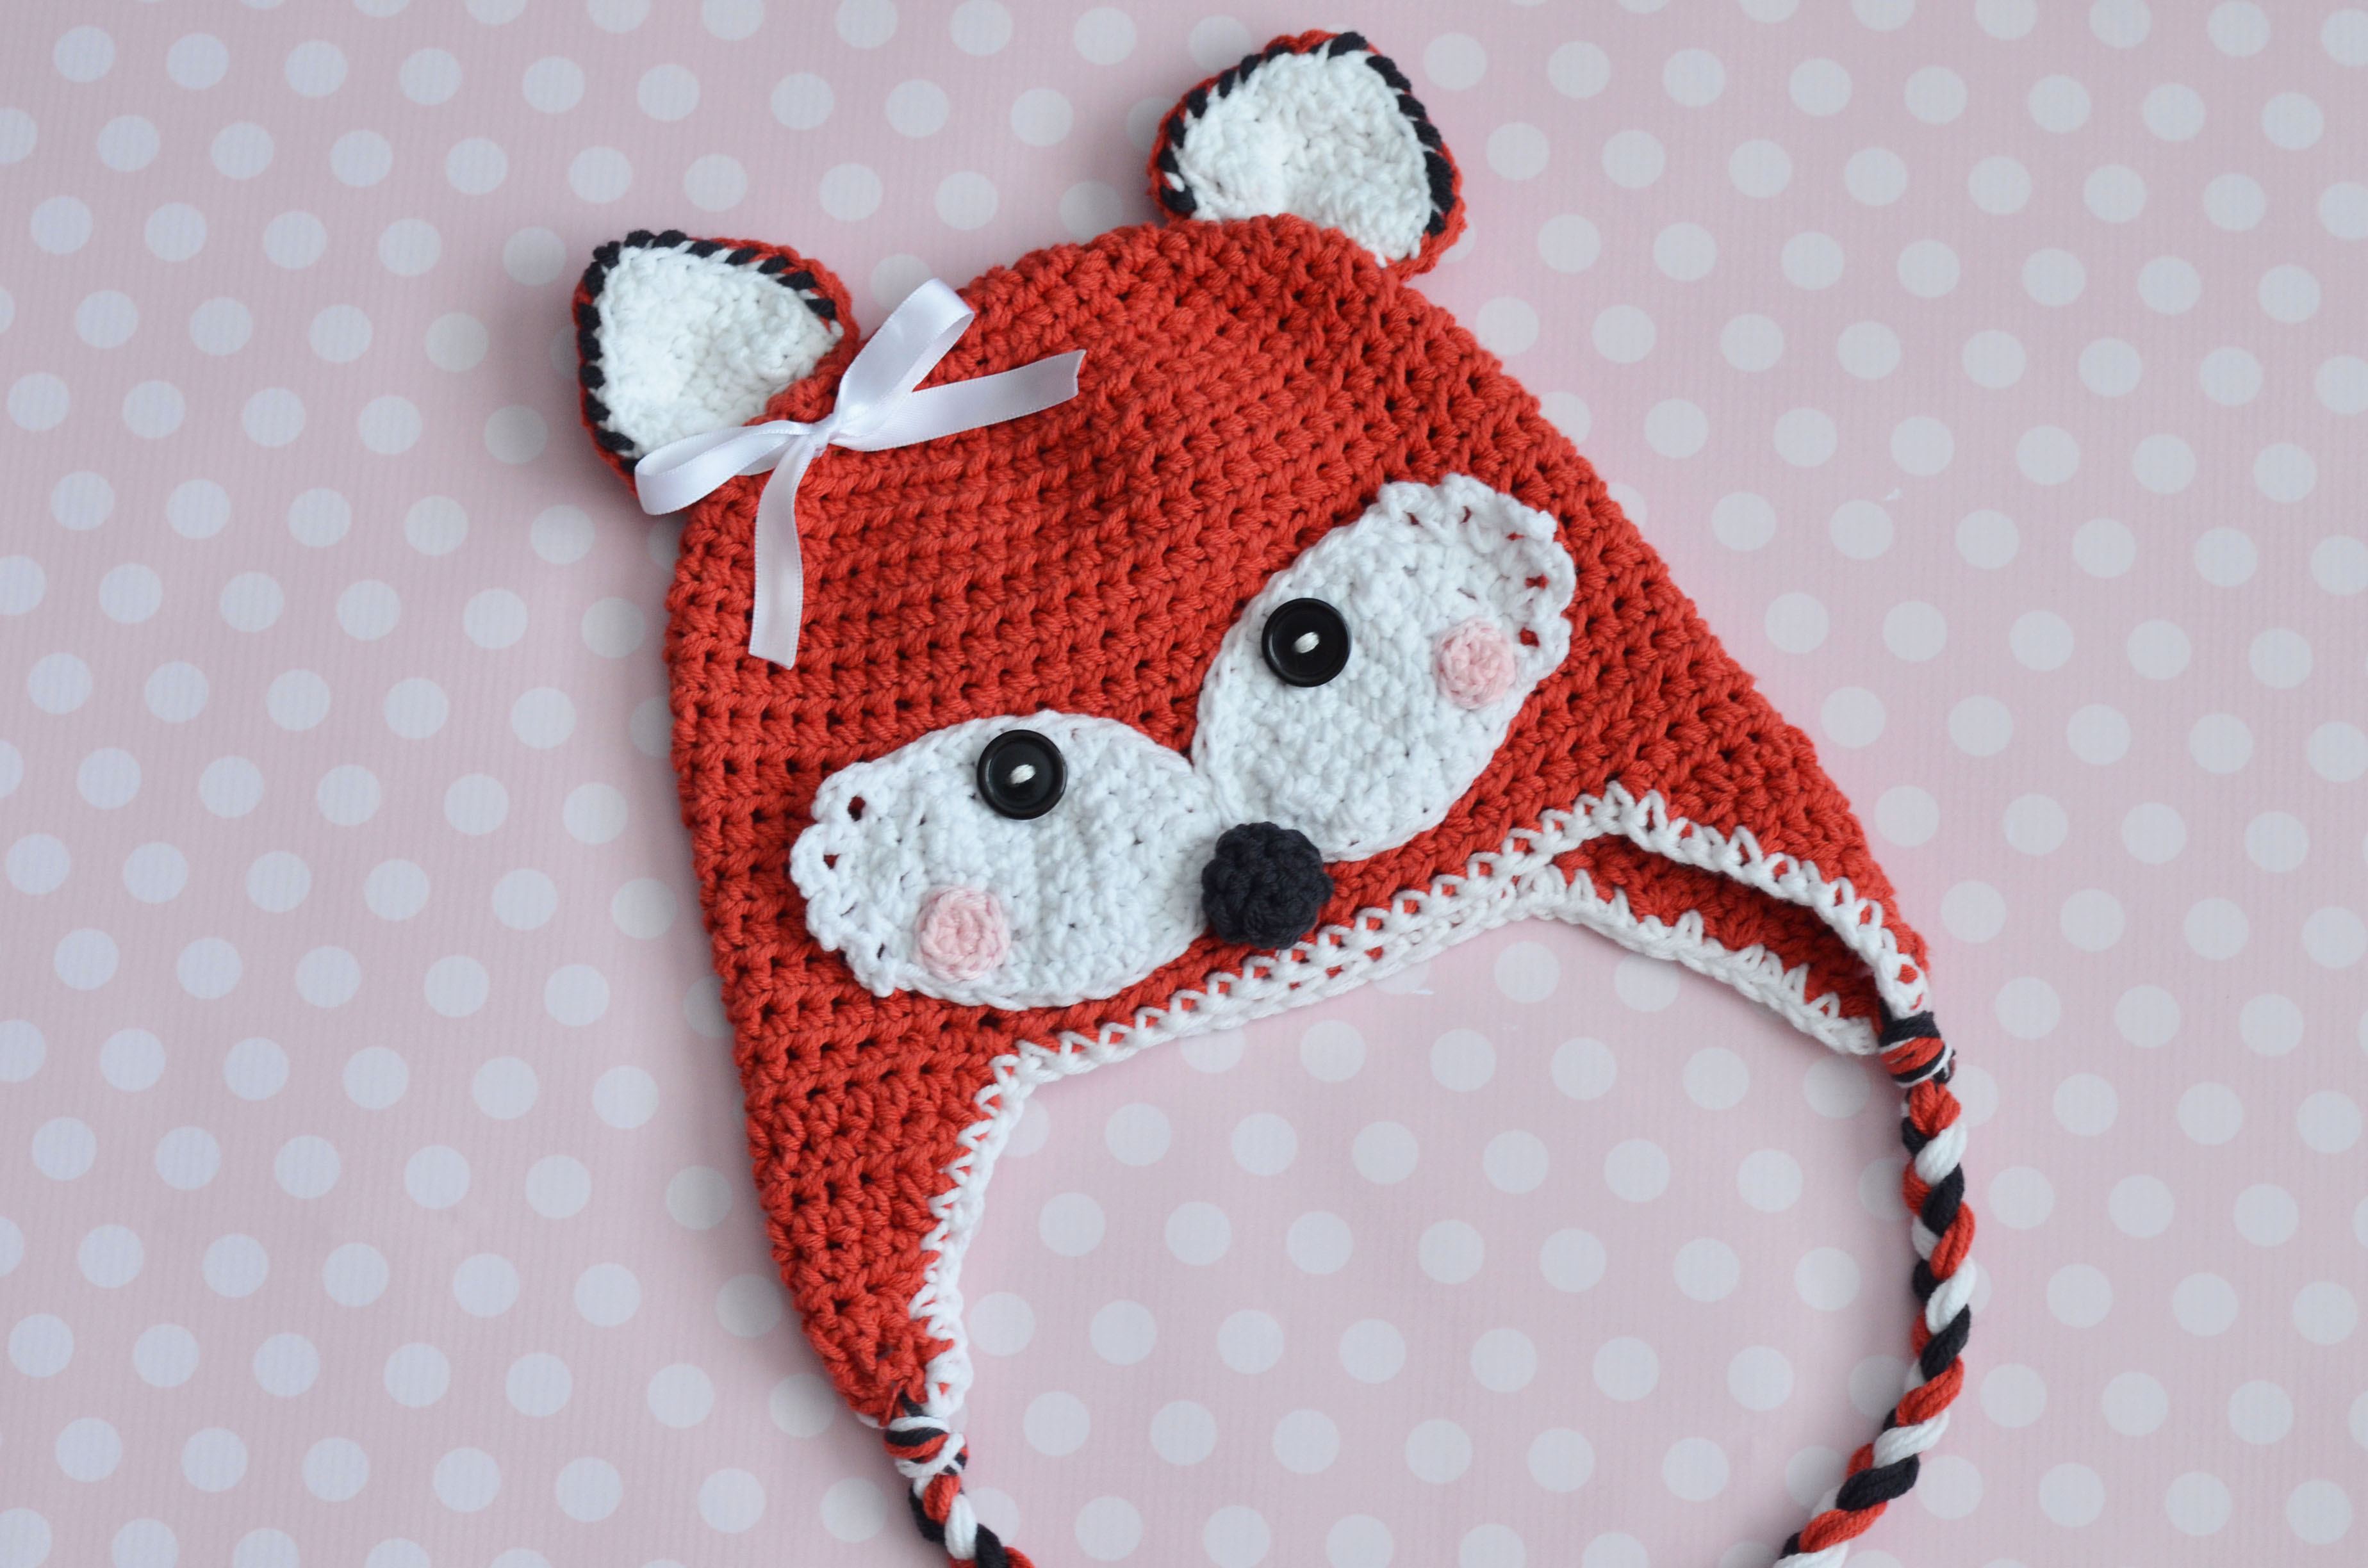 Crochet Fox Hat All Sizes Available For Purchase